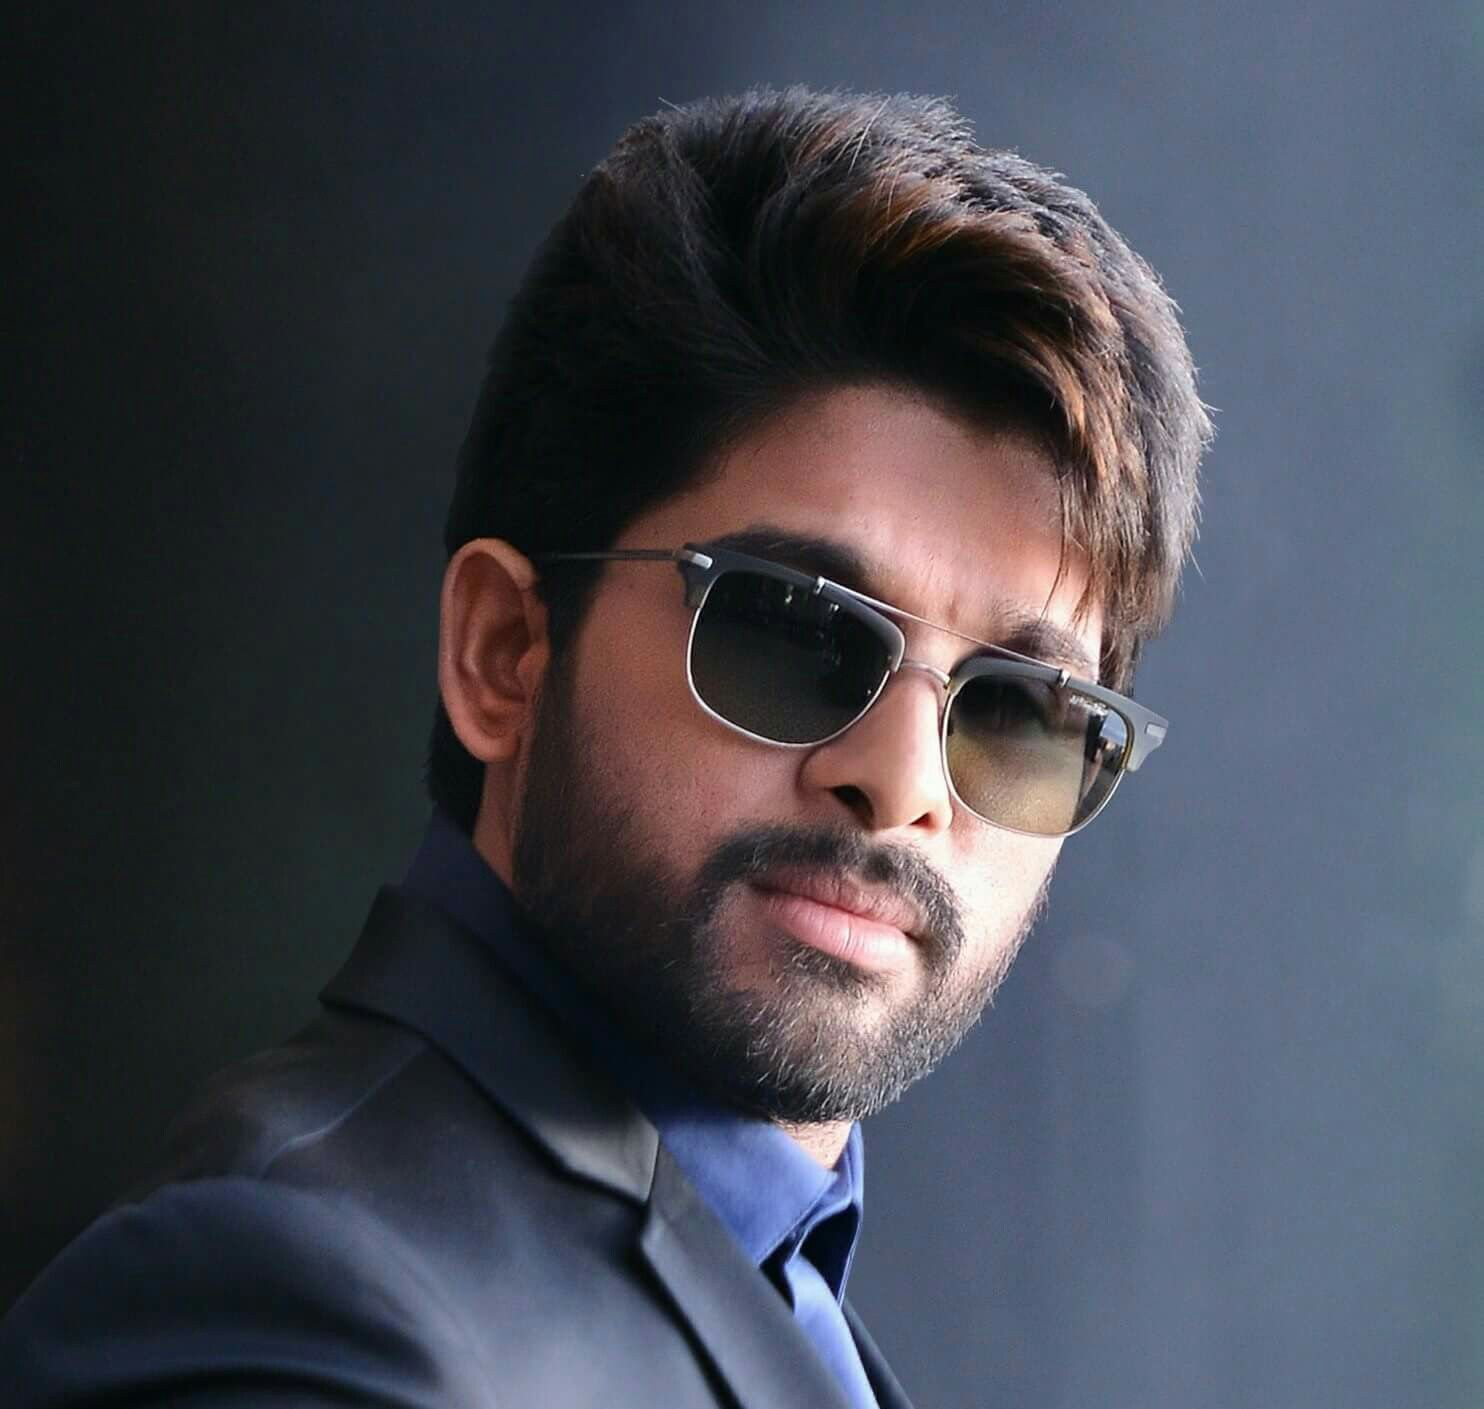 beard and mustache style are new trending fashion allu arjun